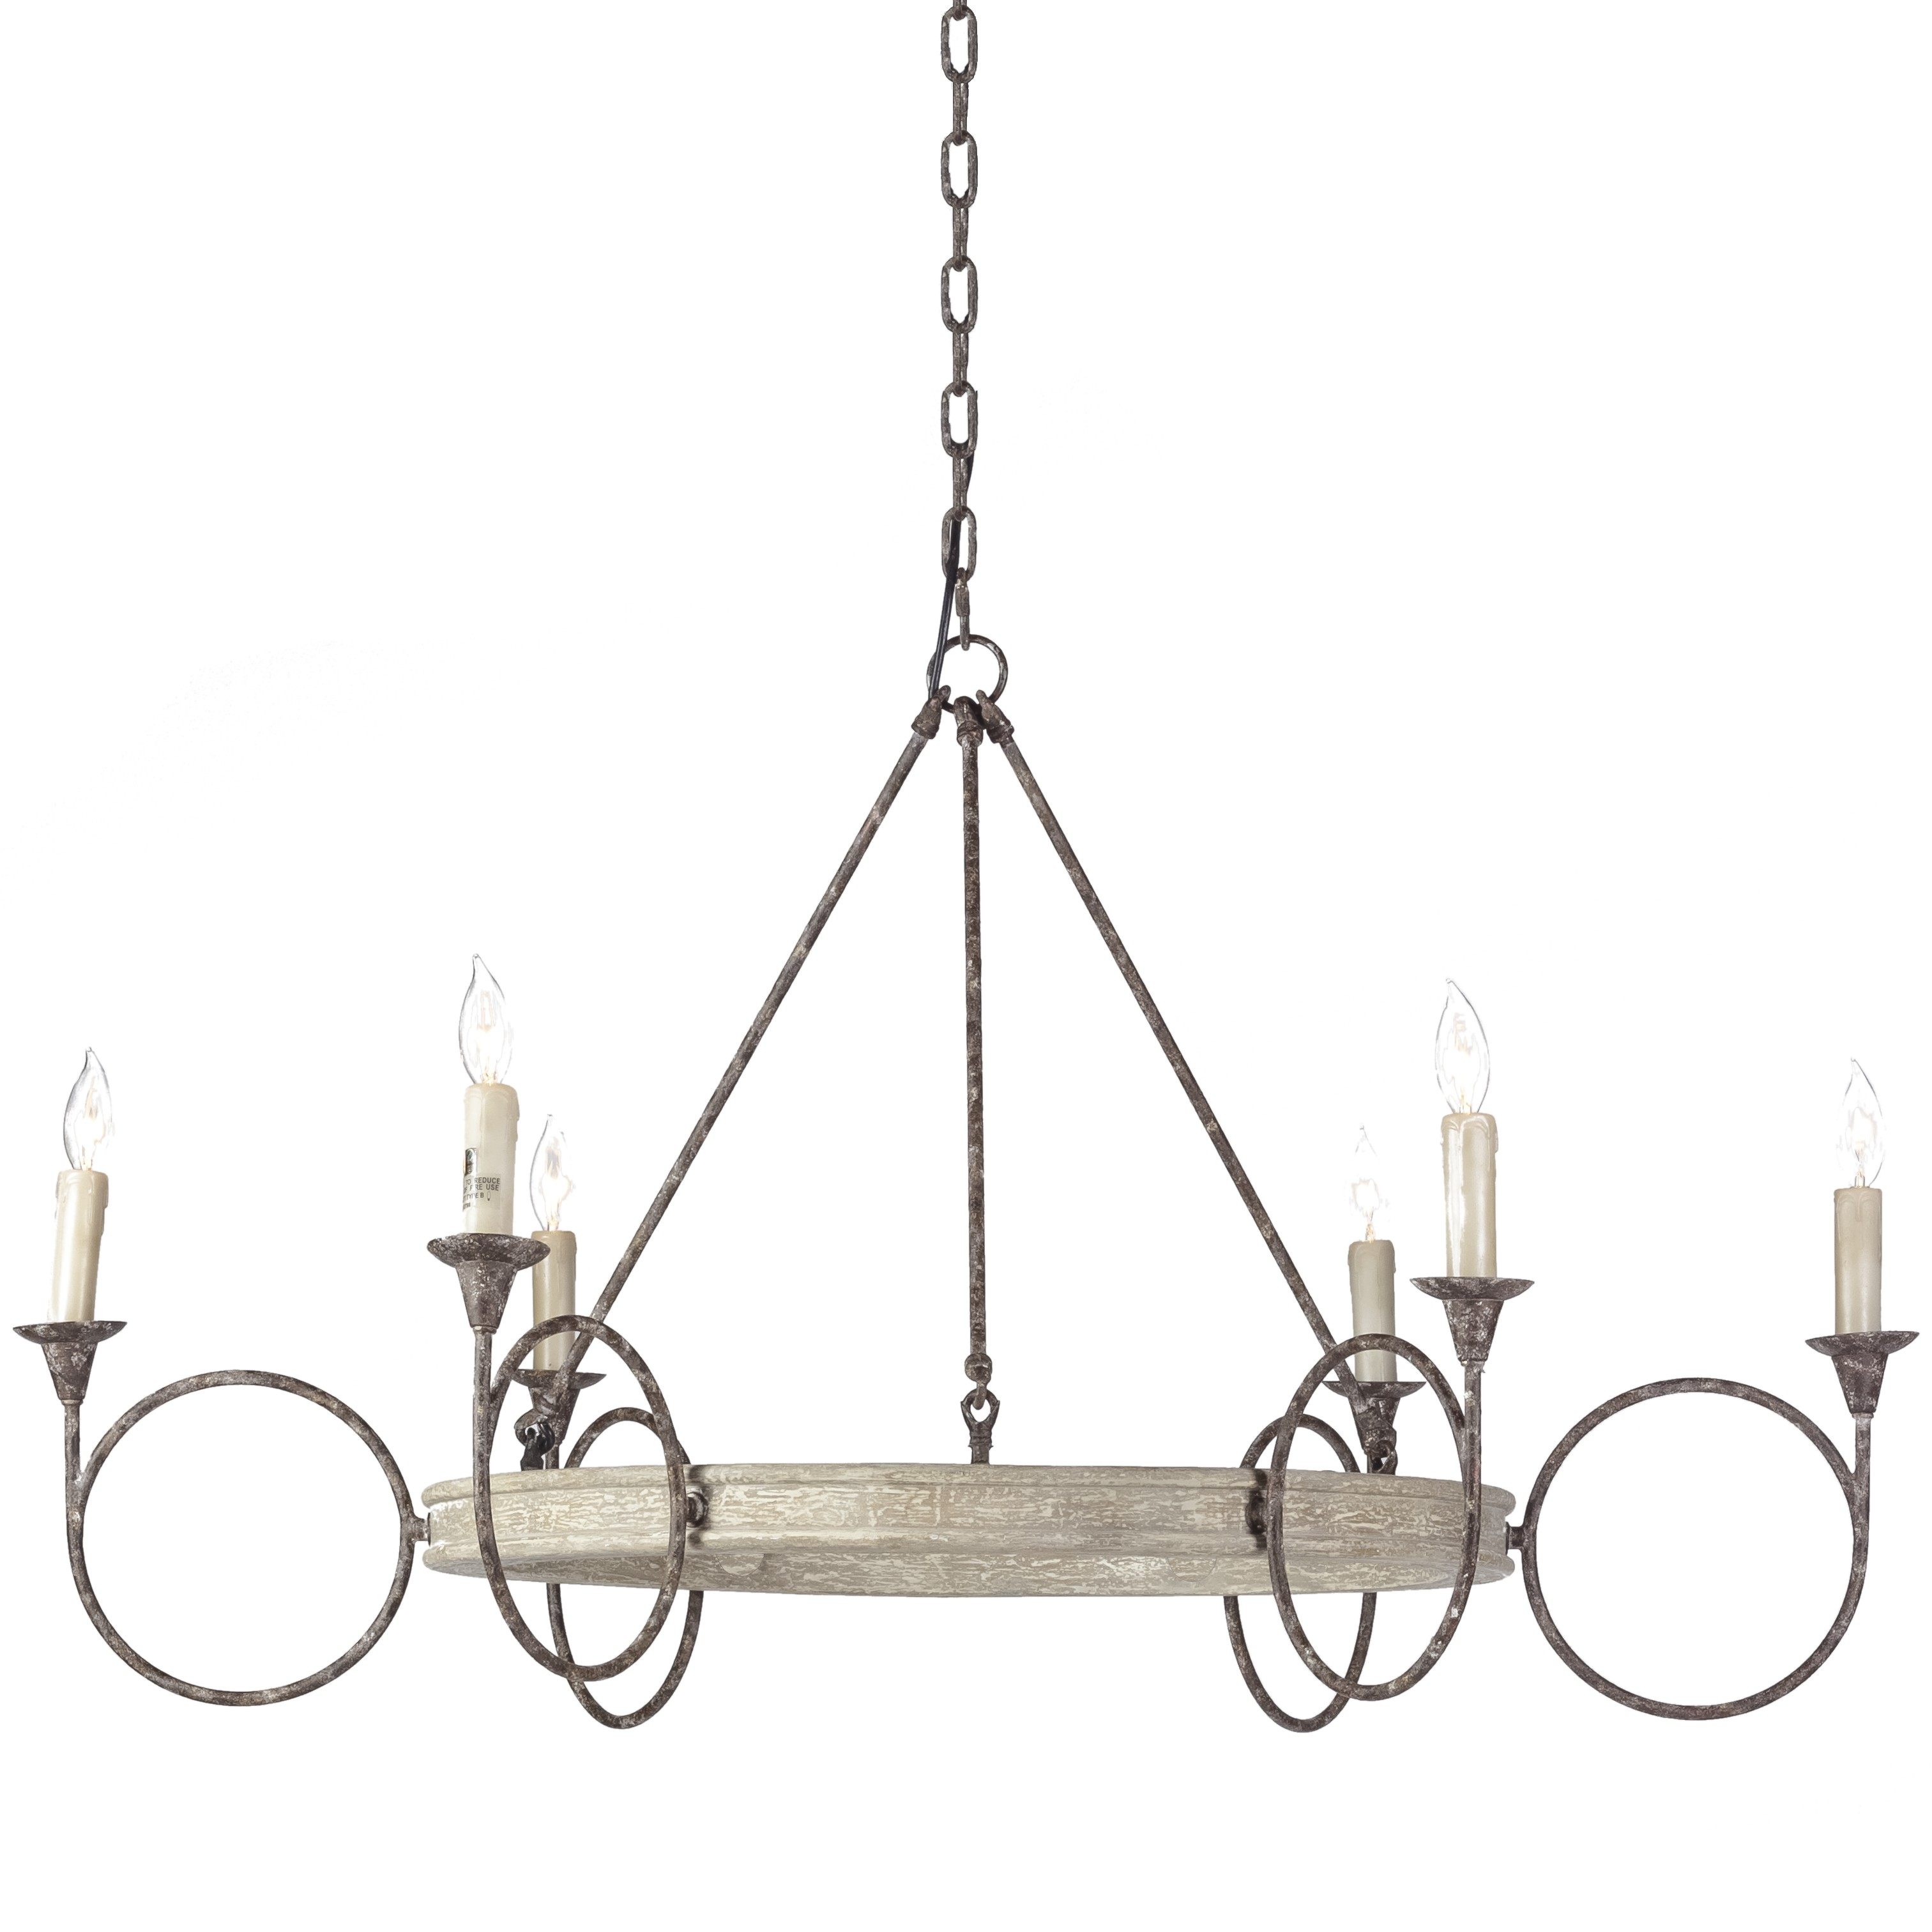 3025x3025 Fair Gabby Bailey Chandelier For Simple Chandelier Silhouette